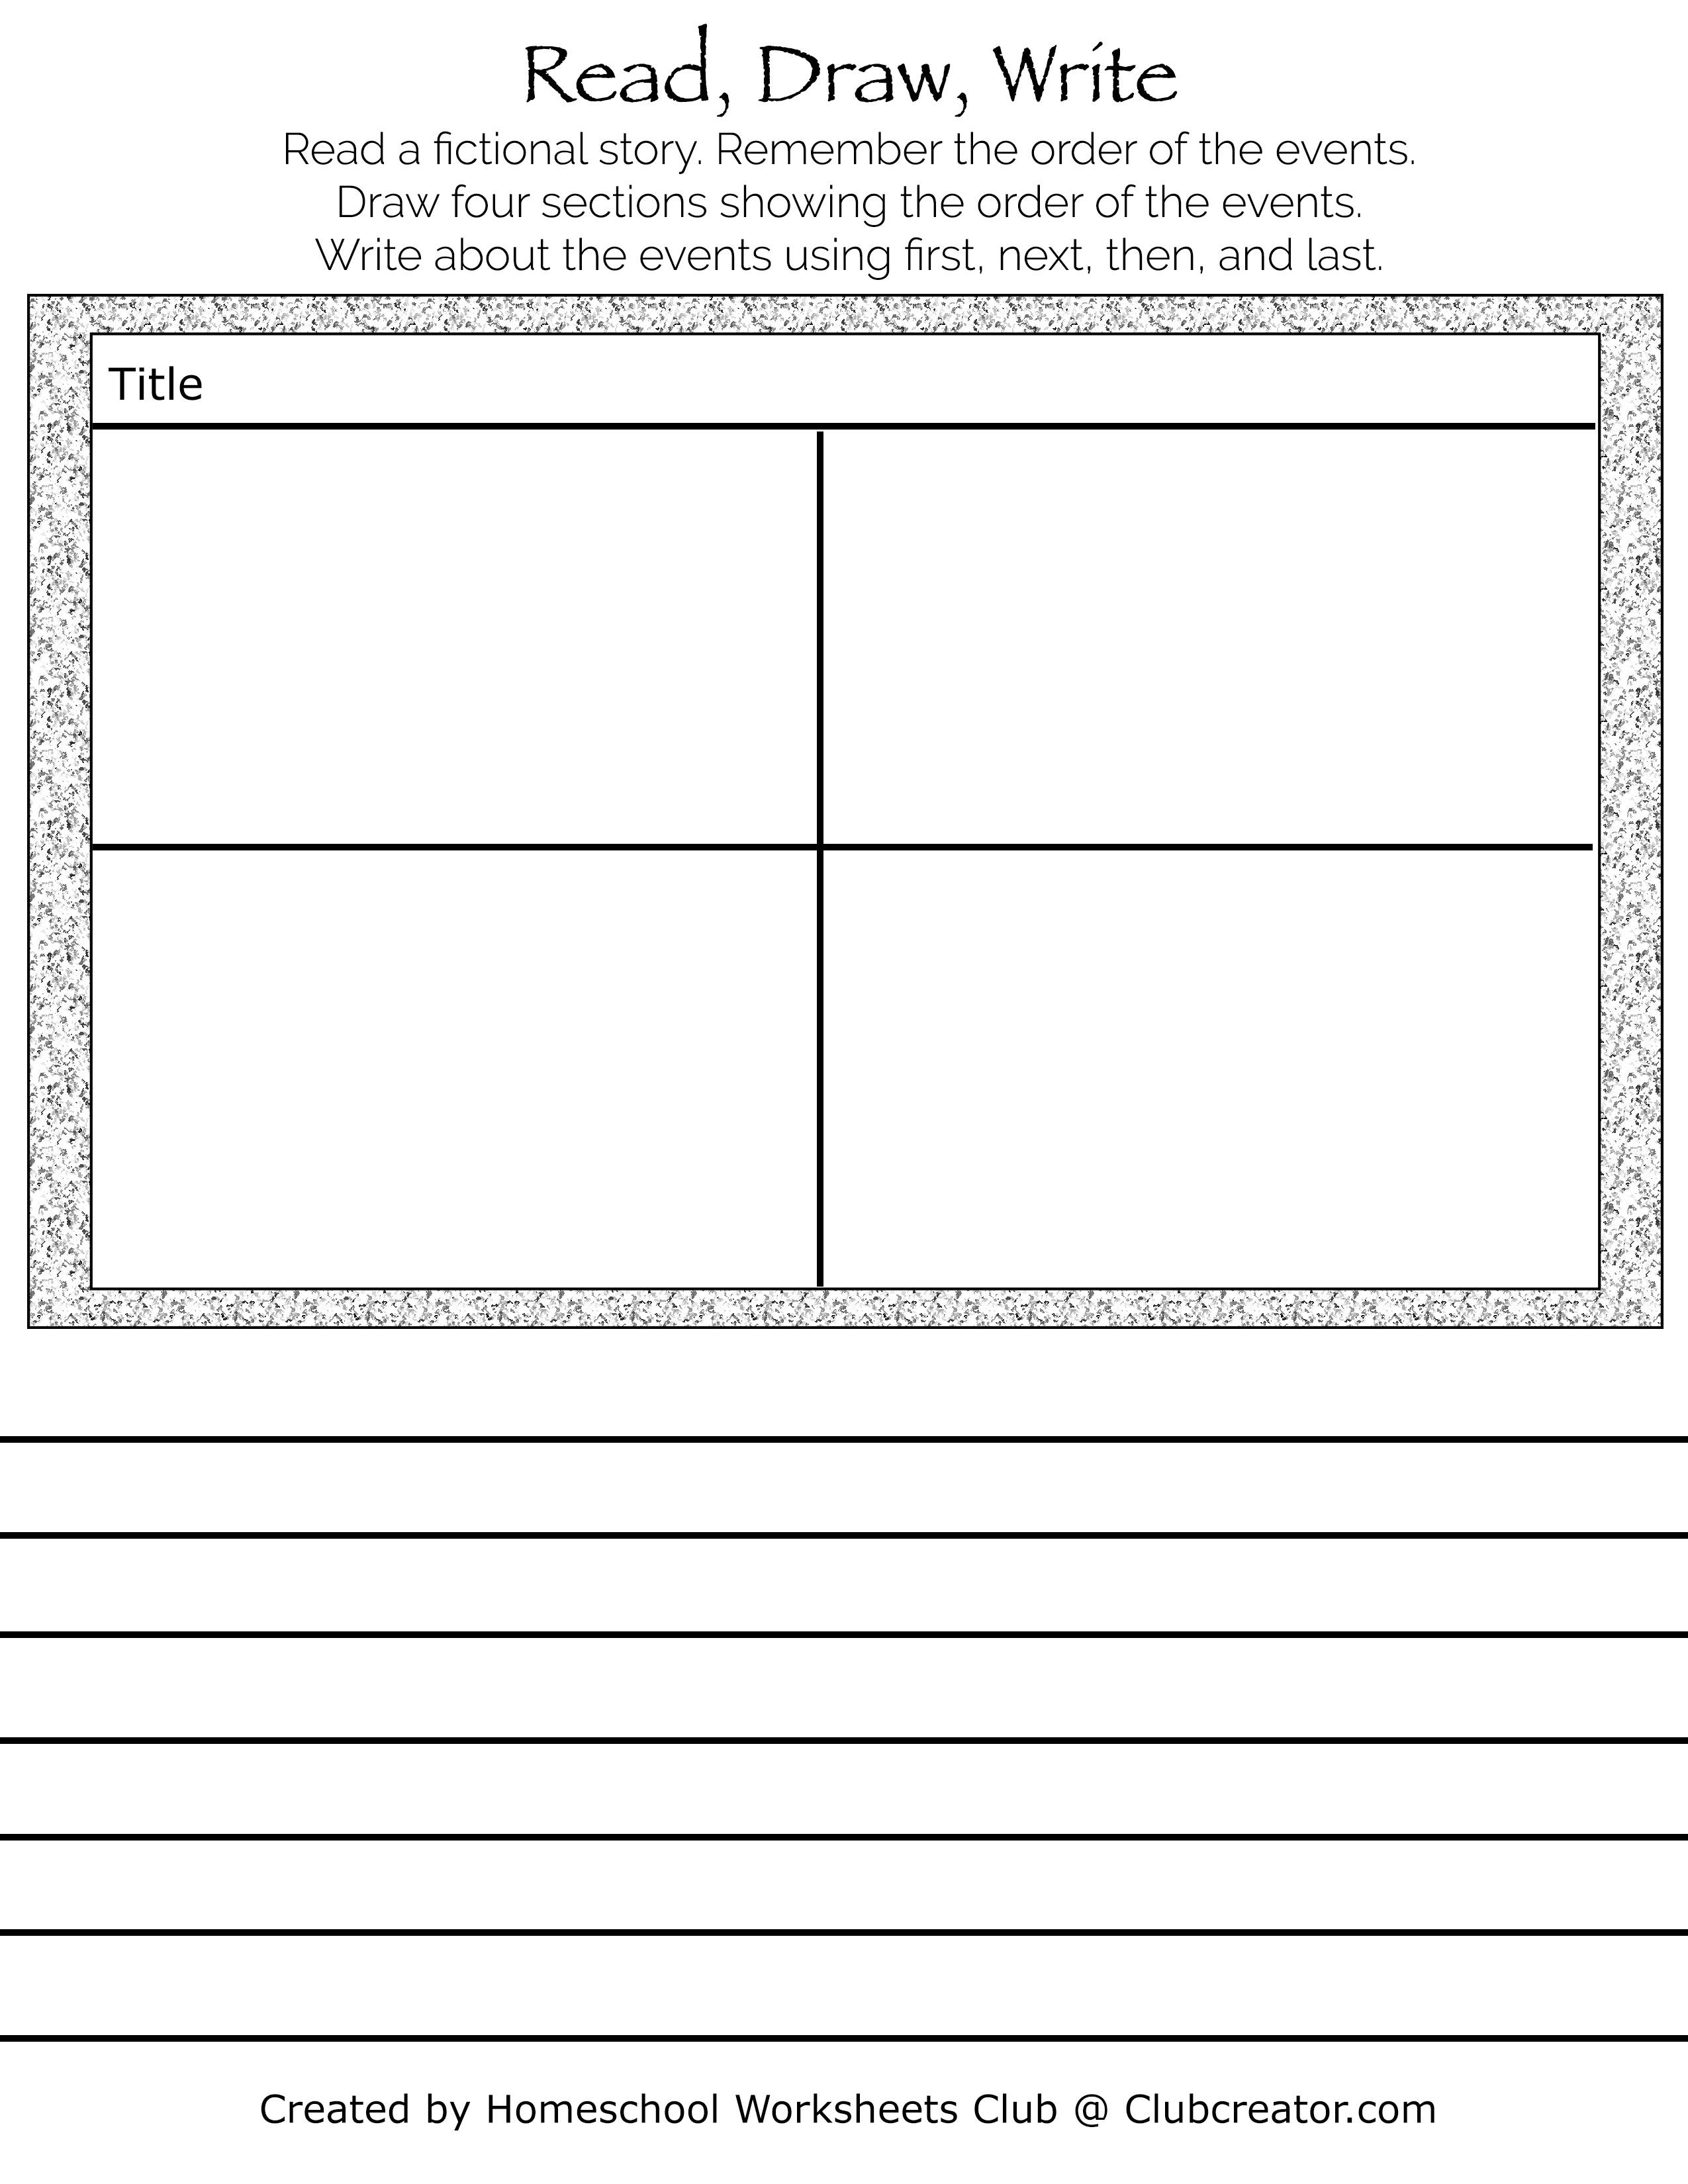 Sequence Of Events Worksheet Book Response Homeschool Worksheets Sequence Of Events Worksheets